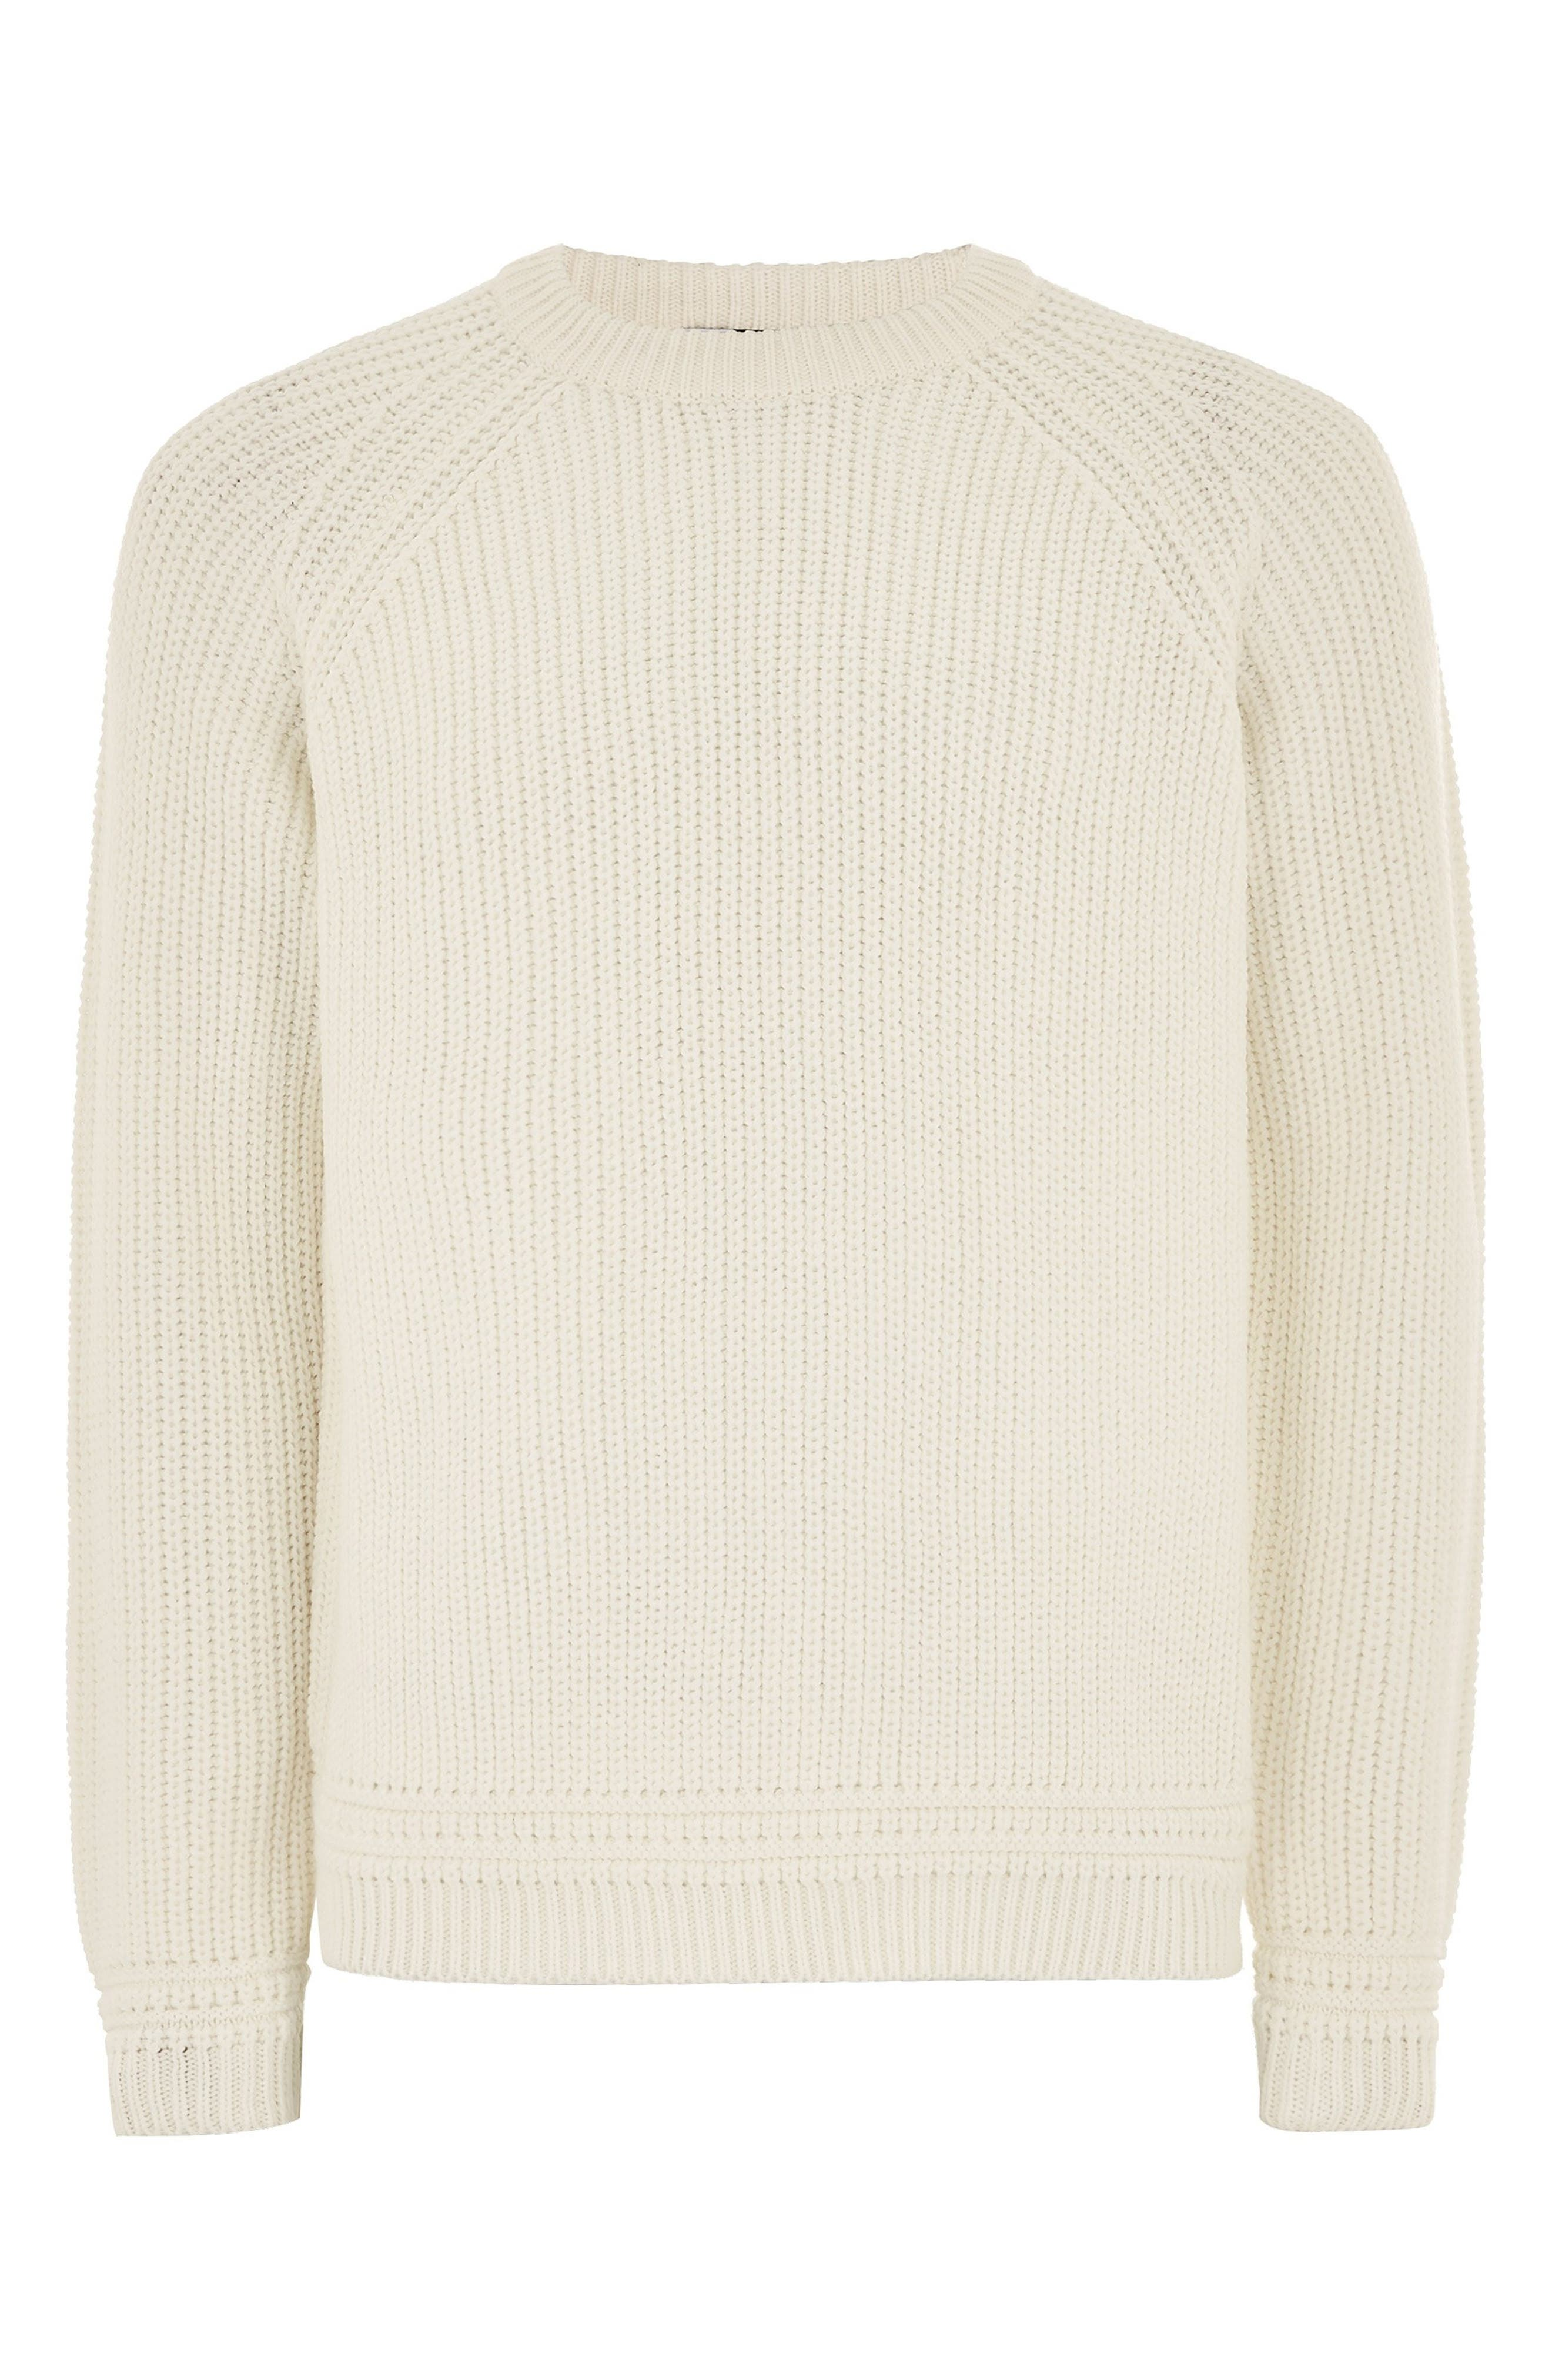 Ribbed Sweater,                             Alternate thumbnail 3, color,                             900